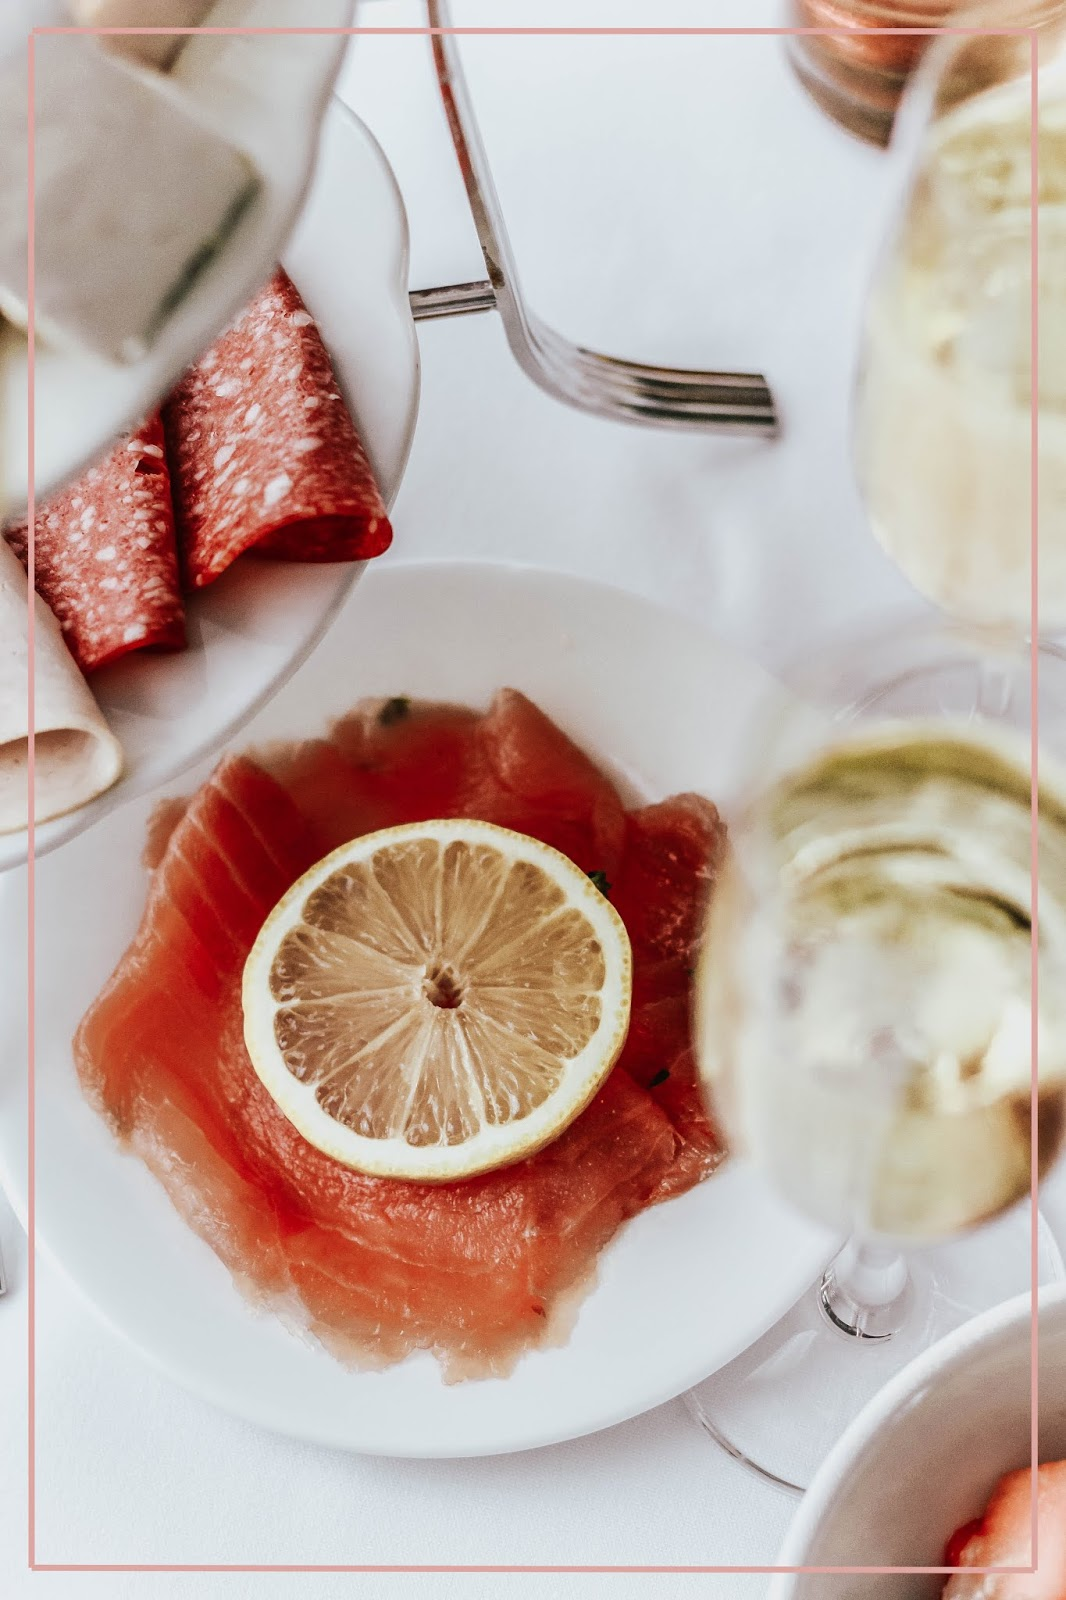 Smoked Salmon With Slice of Lemon Breakfast